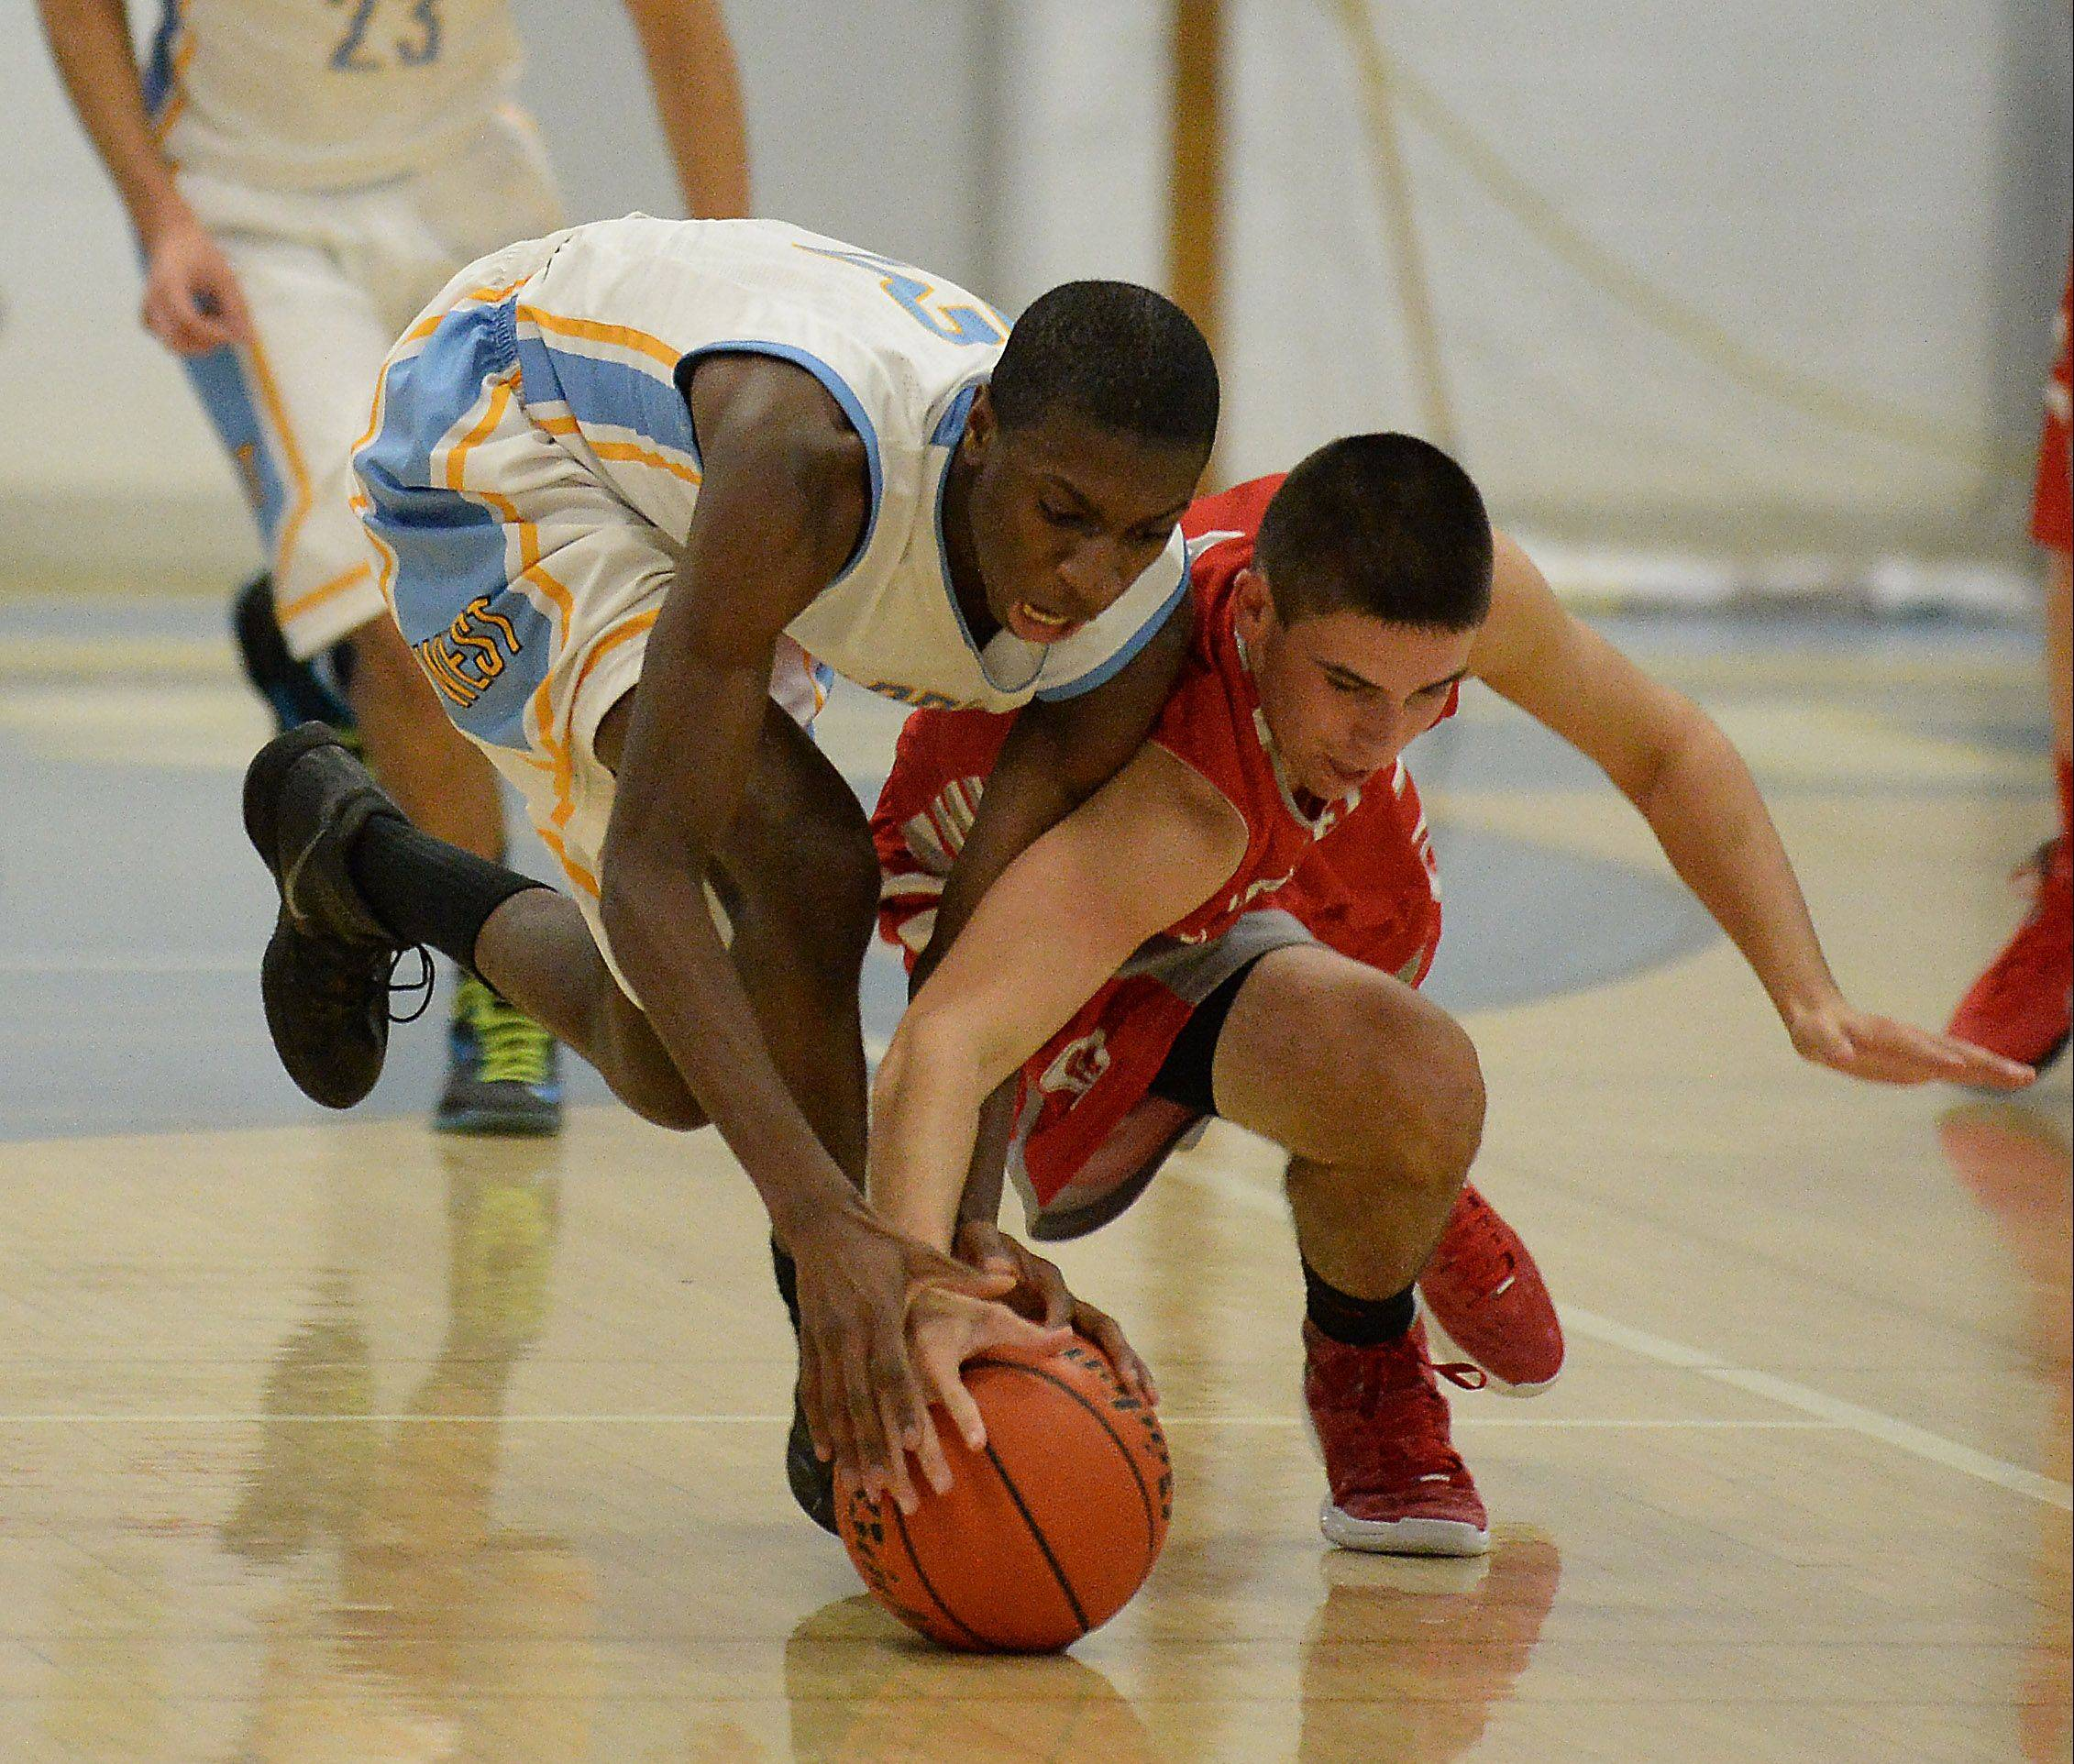 Maine West's Josh Redd (13) and Deerfield's Eric Porter (3) fight for a loose ball during CSL North play Friday at Maine West.